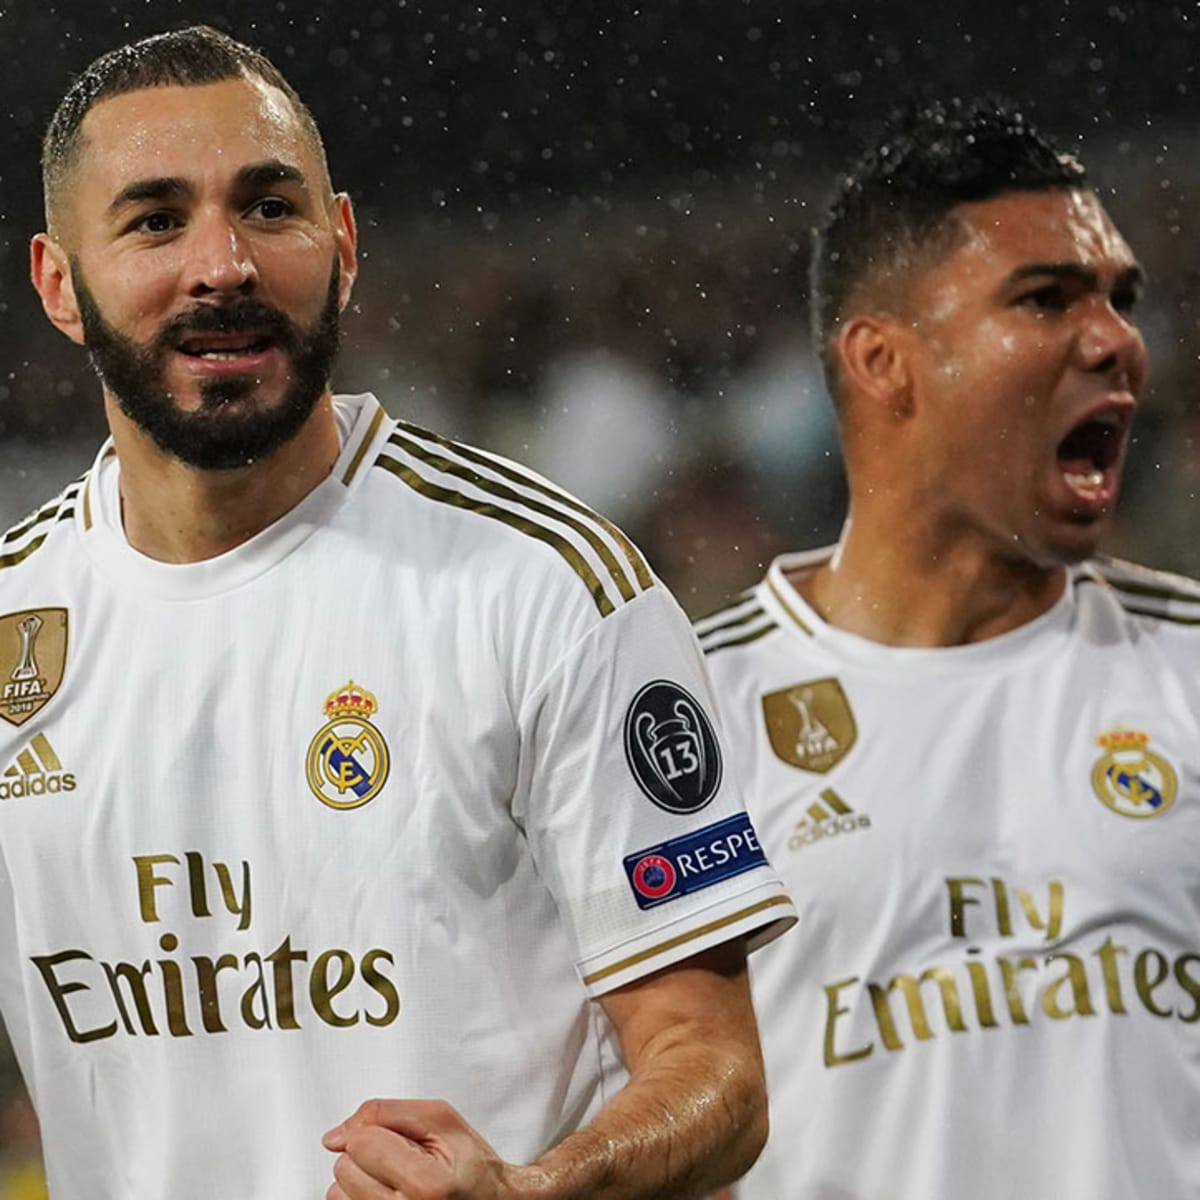 Real Madrid Vs Espanyol Live Stream Watch Online Tv Channel Time Sports Illustrated